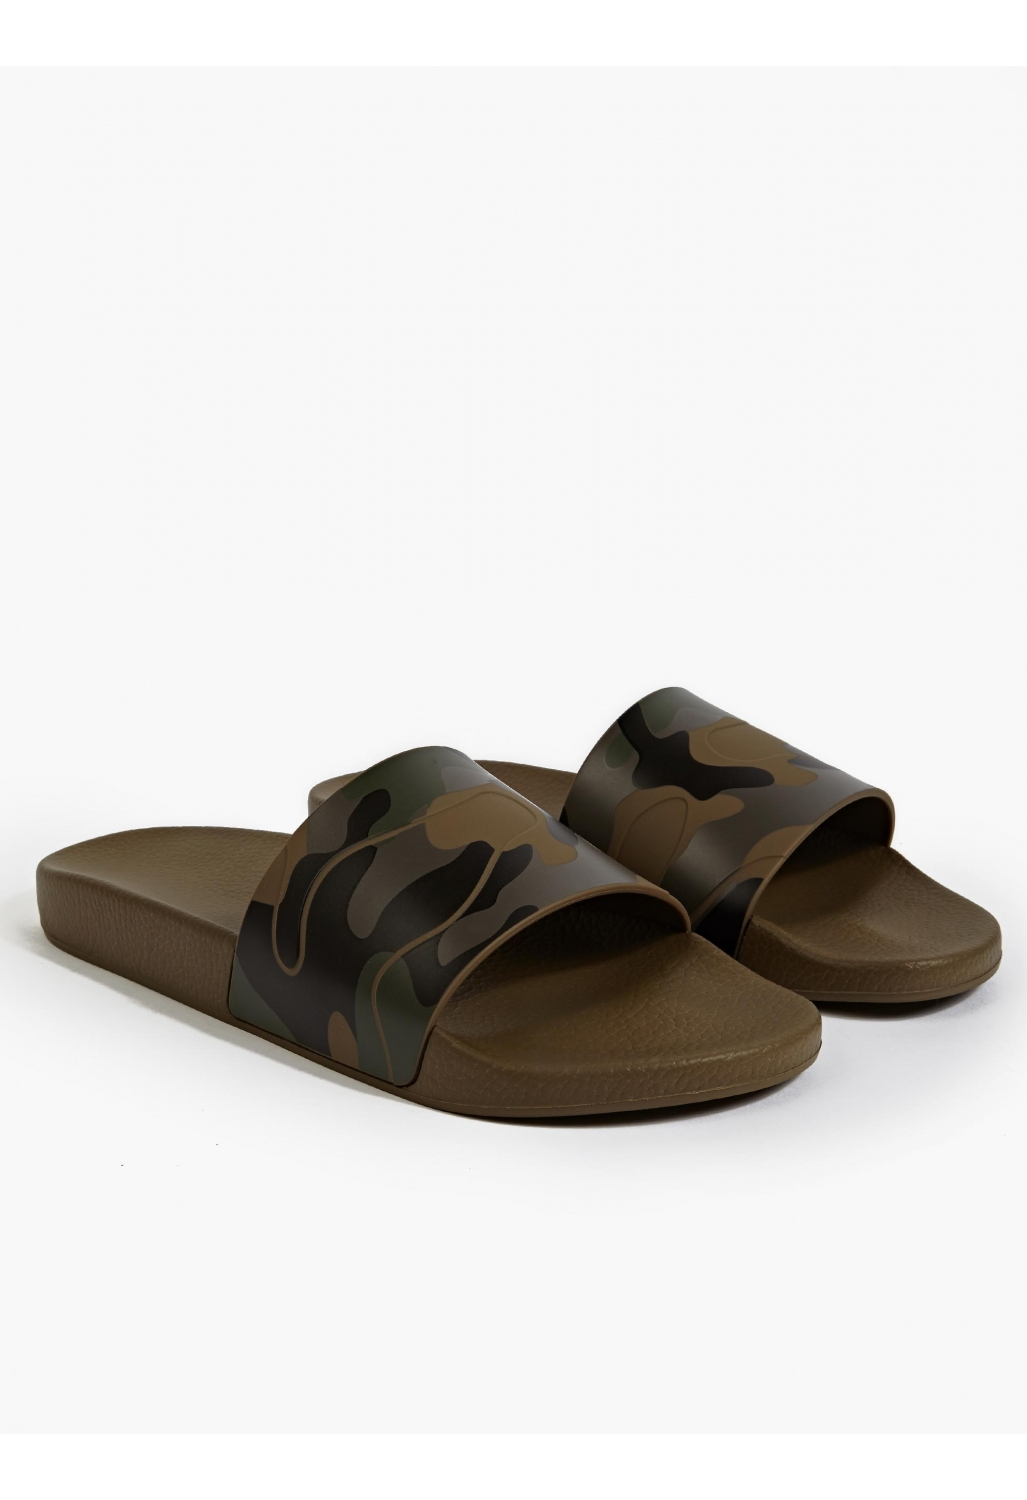 Valentino Camouflage Print Slides In Green For Men Lyst